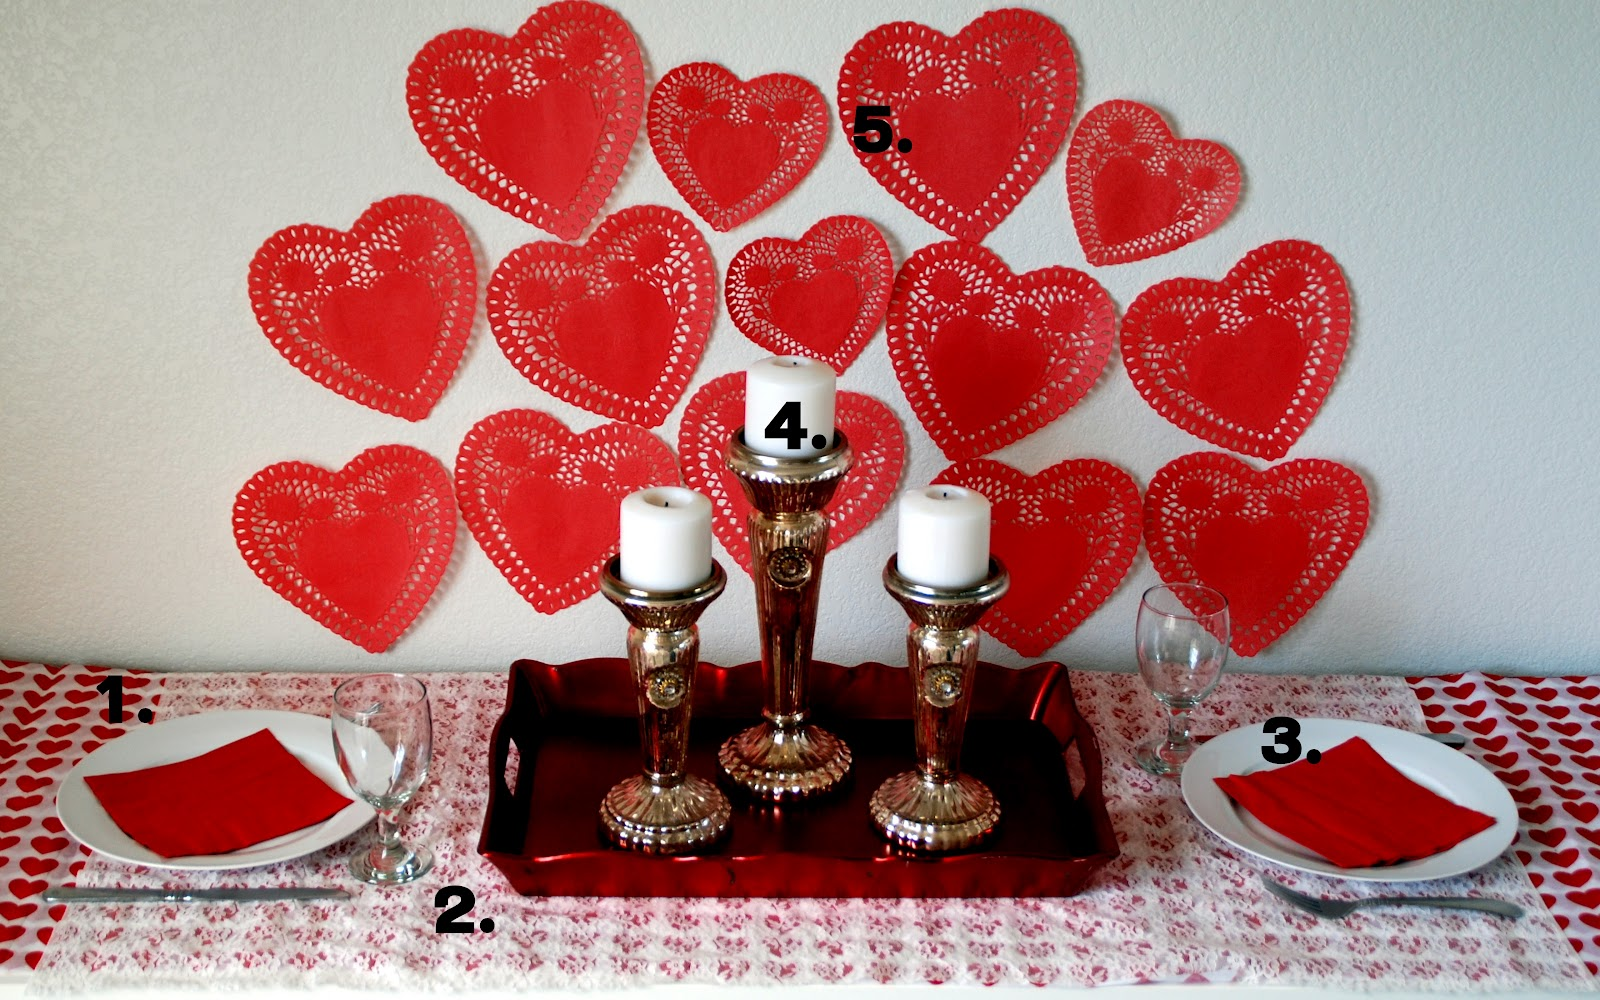 Red Love Dinner With Numbers Romantic Dinner Ideas At Home For Two